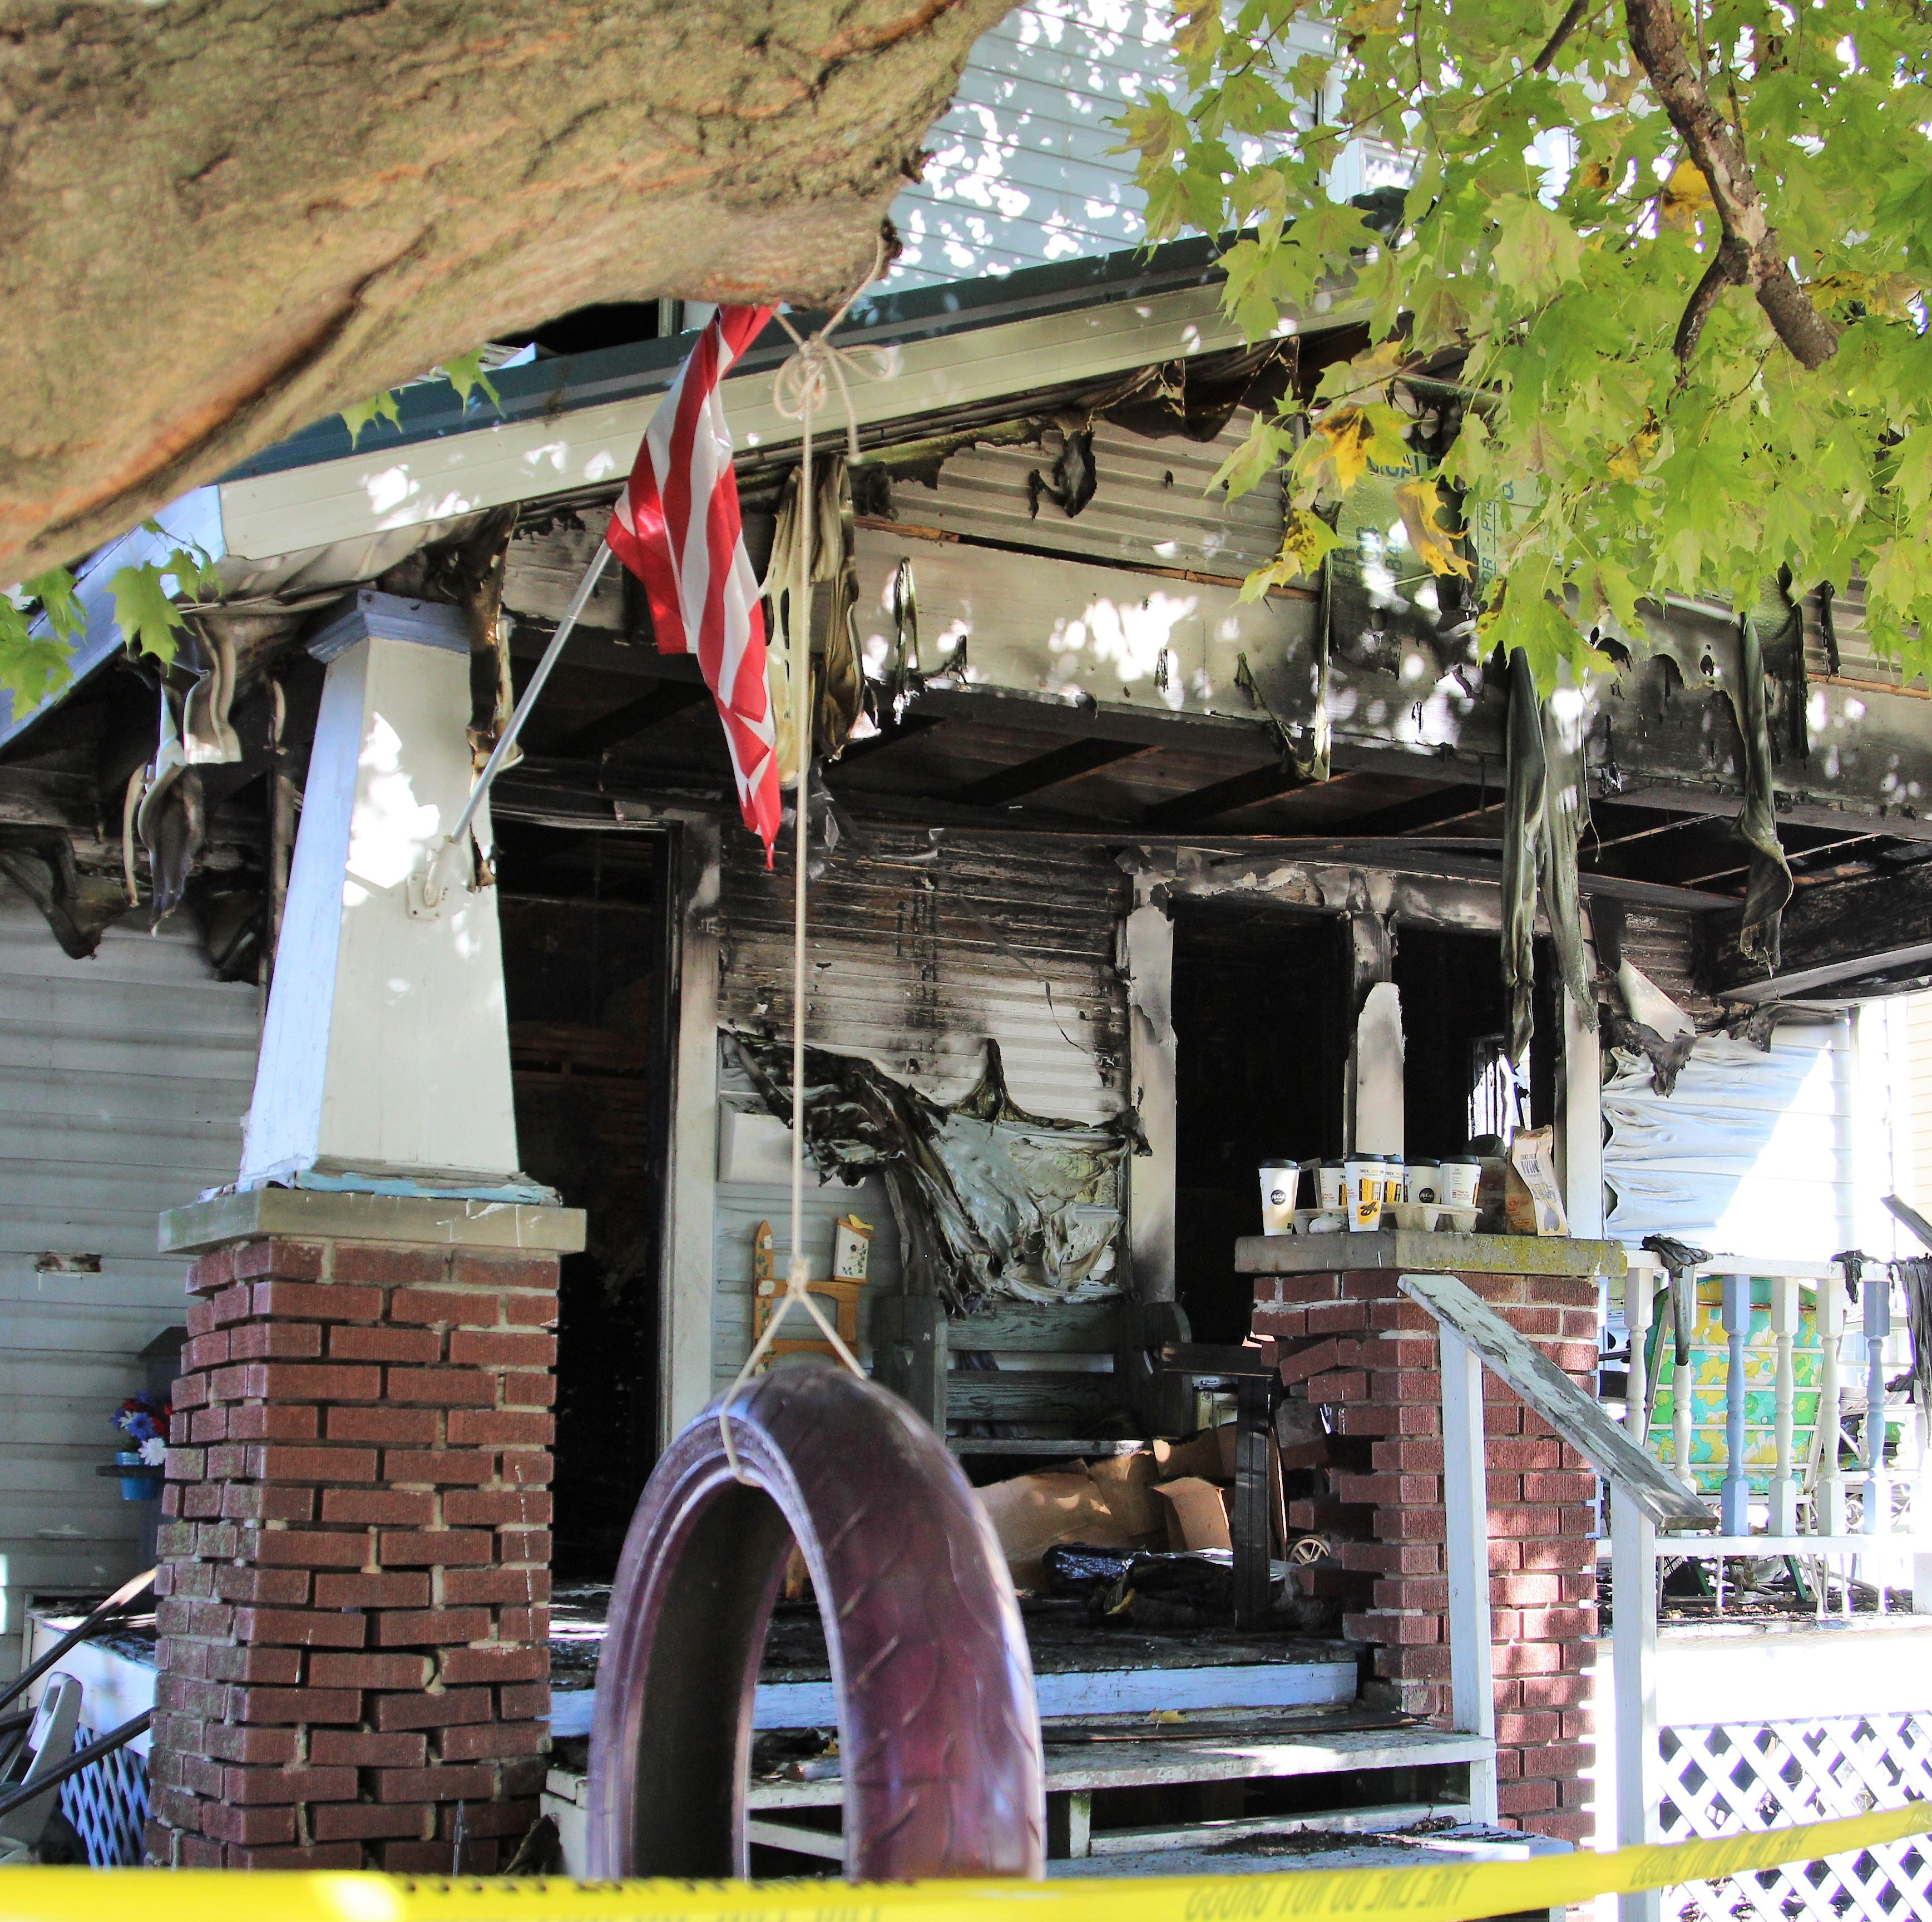 Officials release name of woman killed in East Fairground Street fire